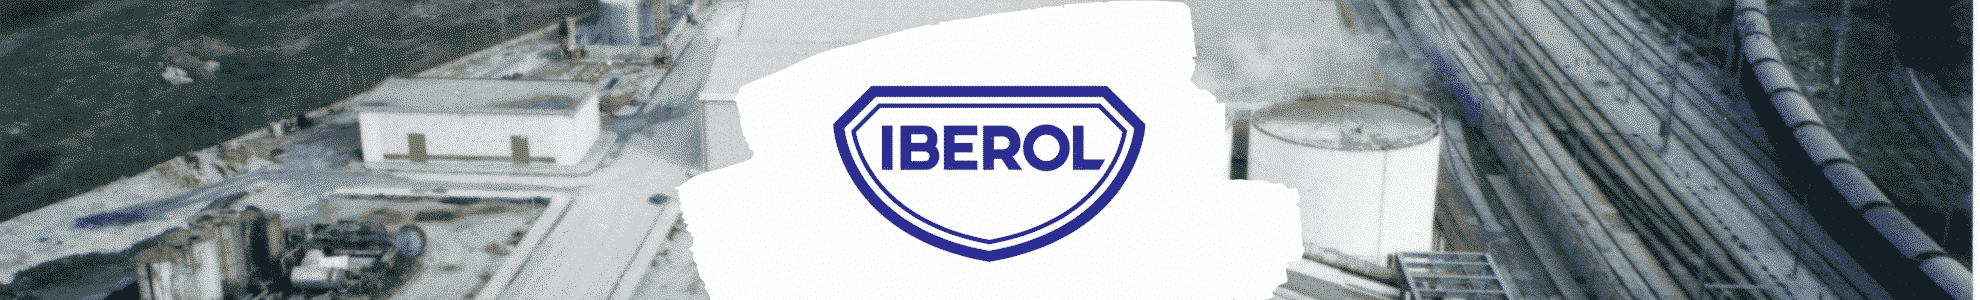 Iberol expands the use of SISQUAL solutions